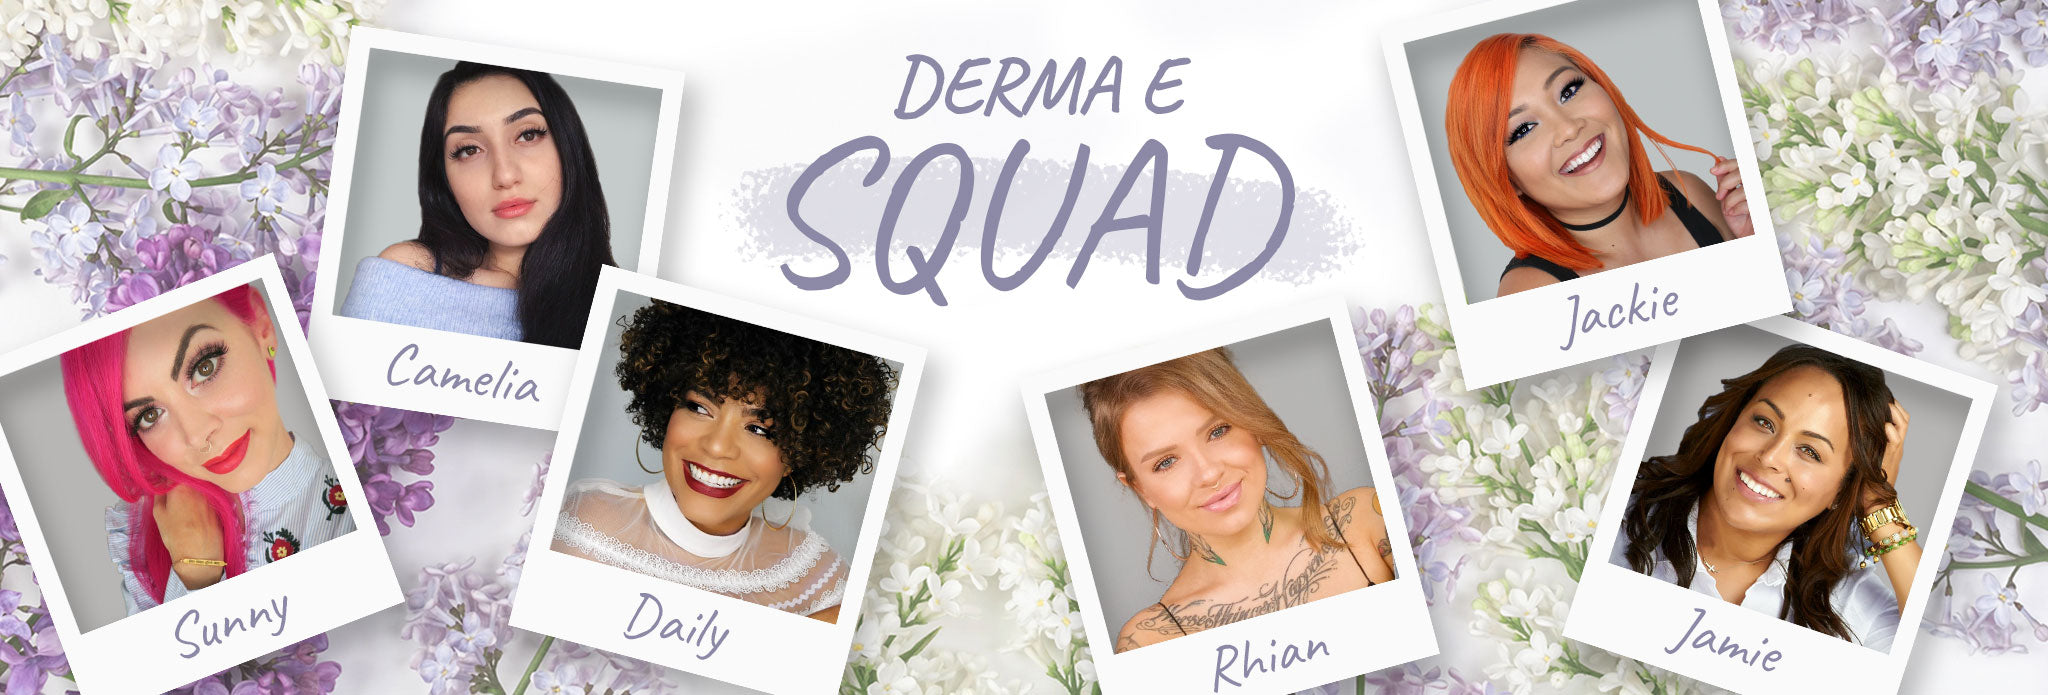 Derma E Squad Girls.